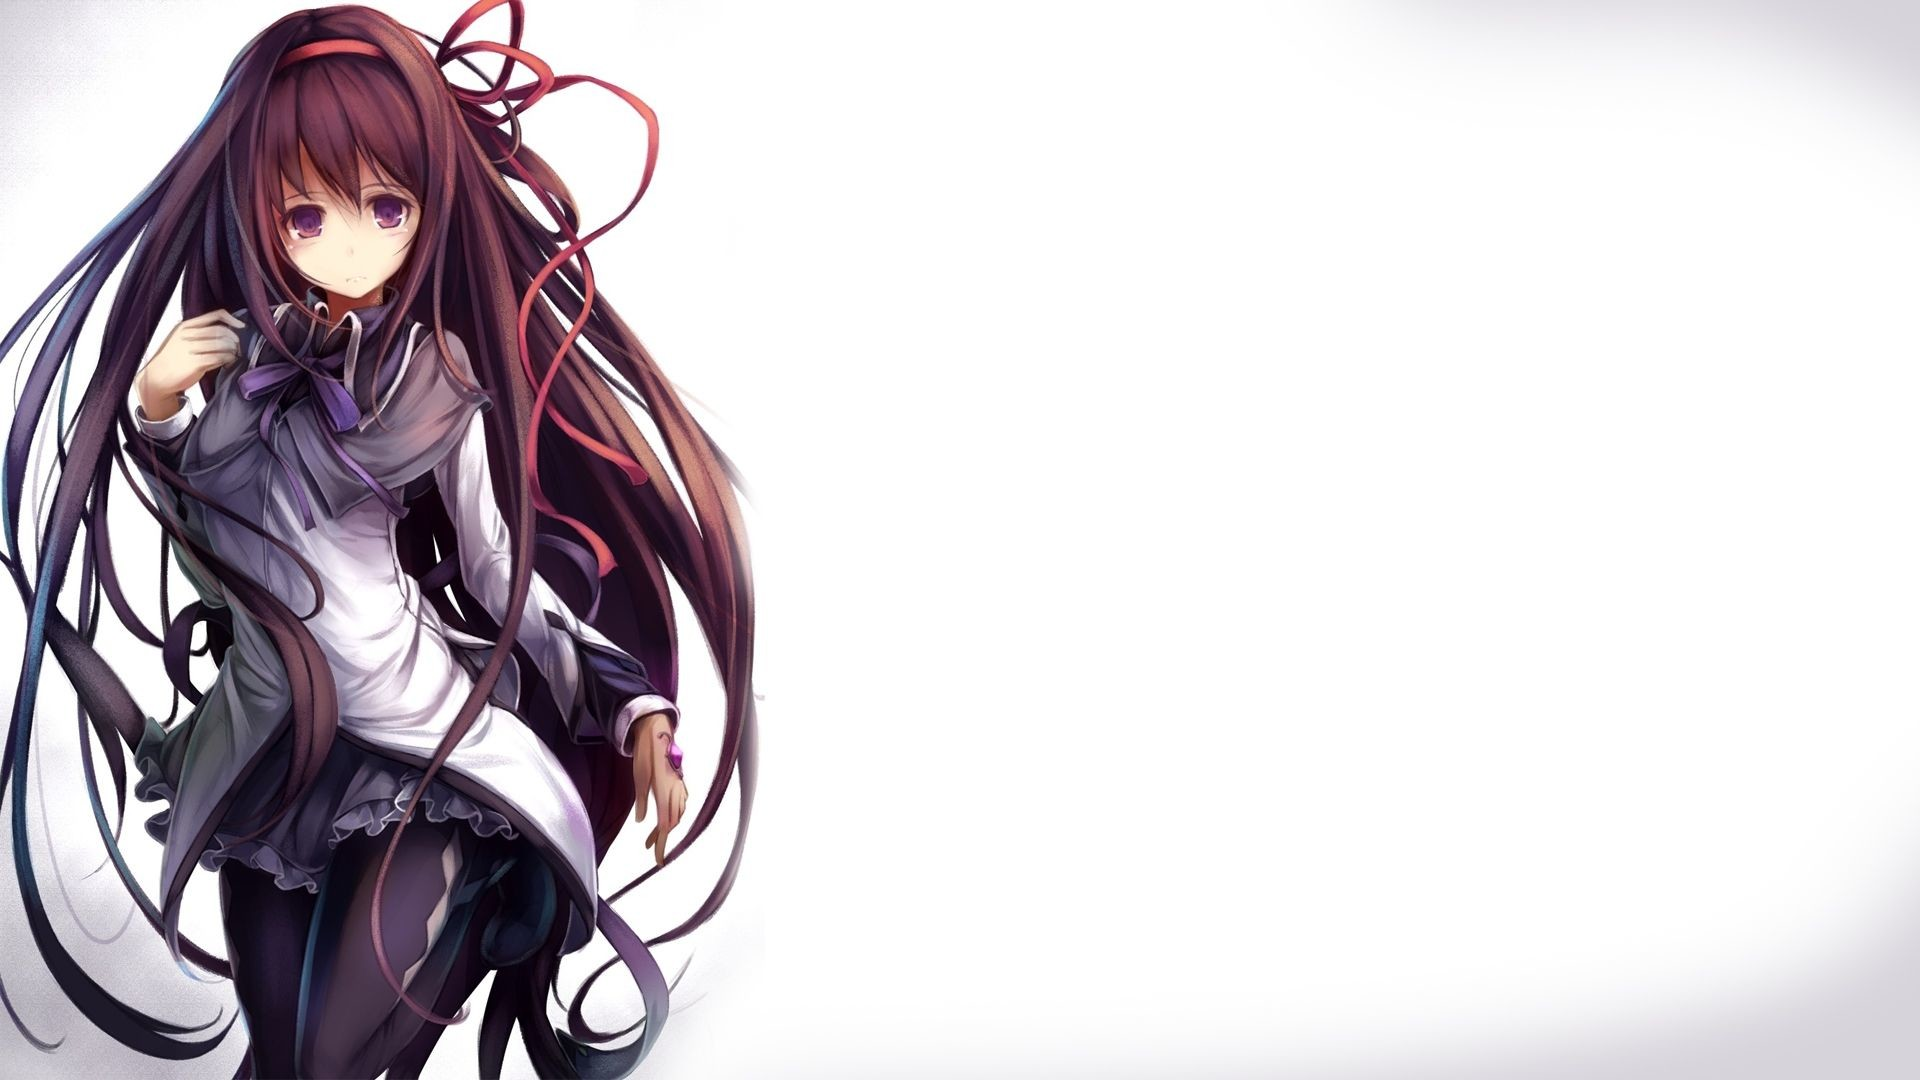 Res: 1920x1080, Anime Music Wallpapers Wallpaper